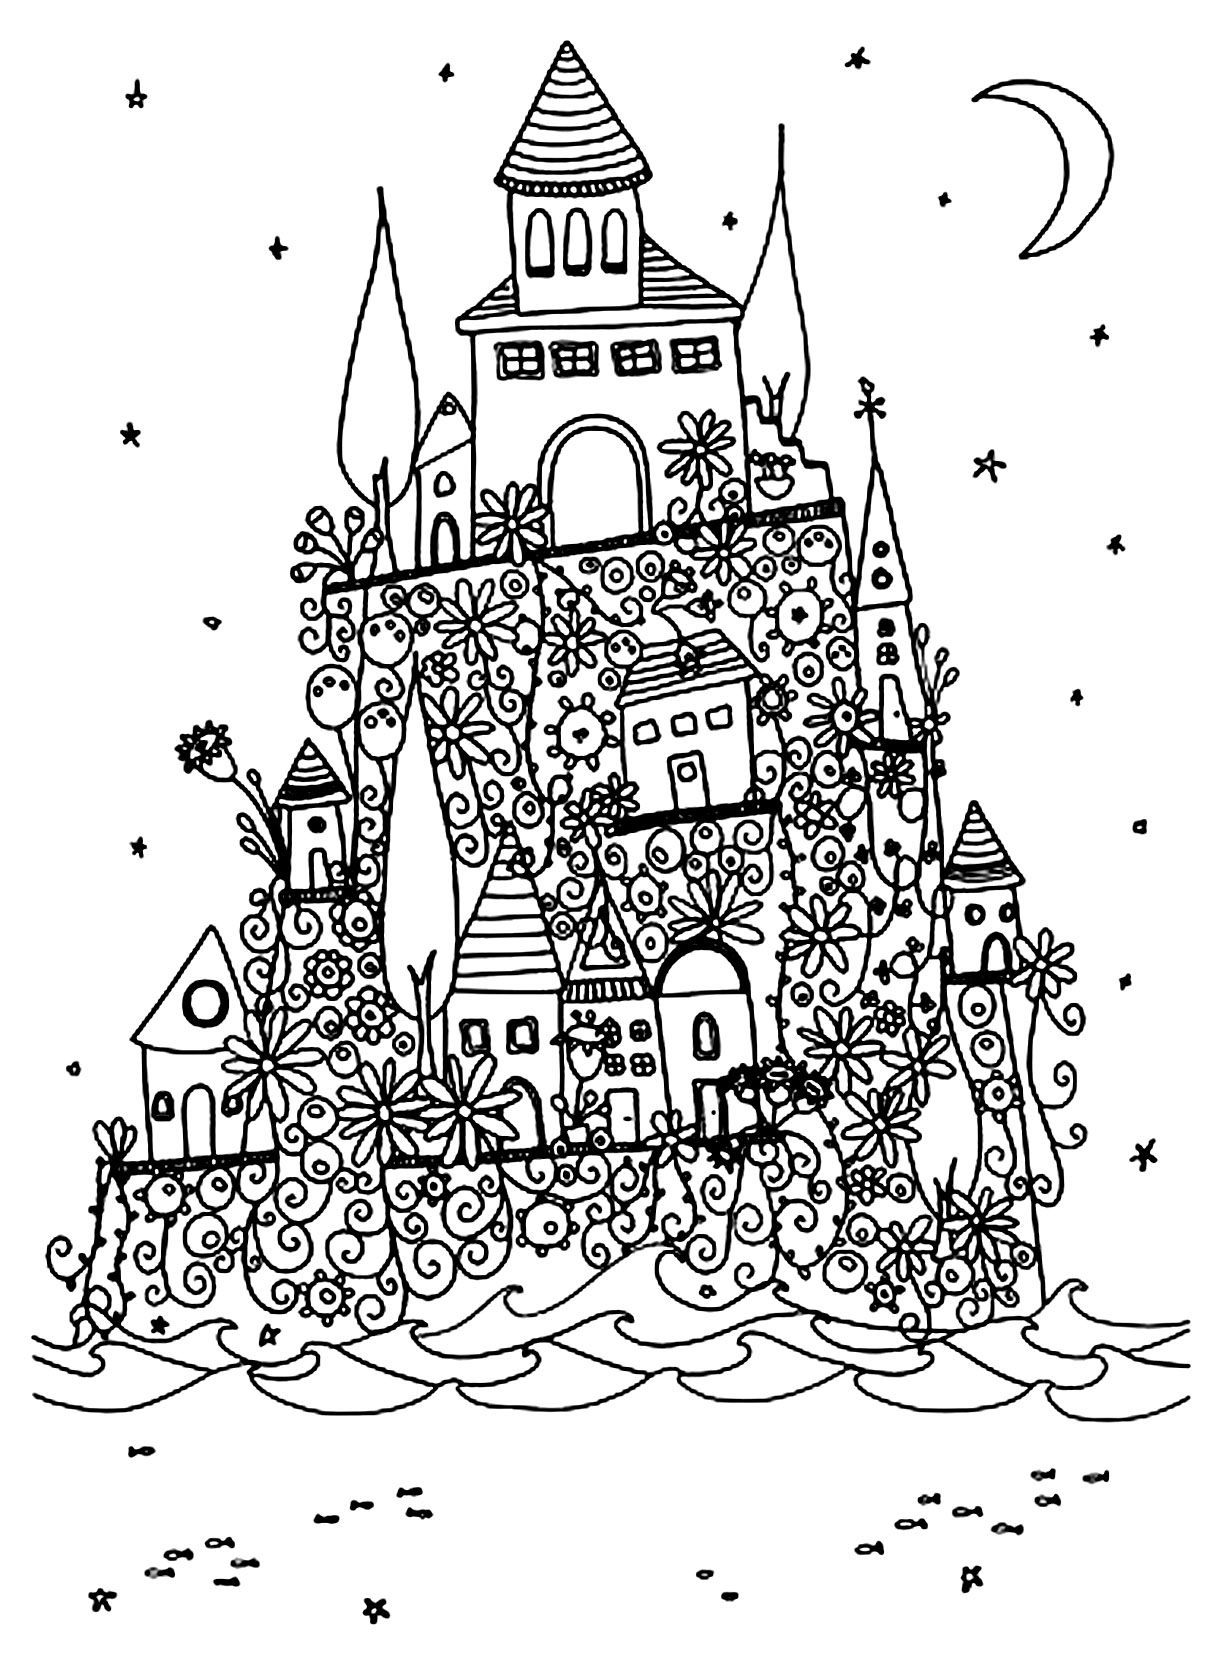 Free coloring page coloring architecture village on a hill village on a hill